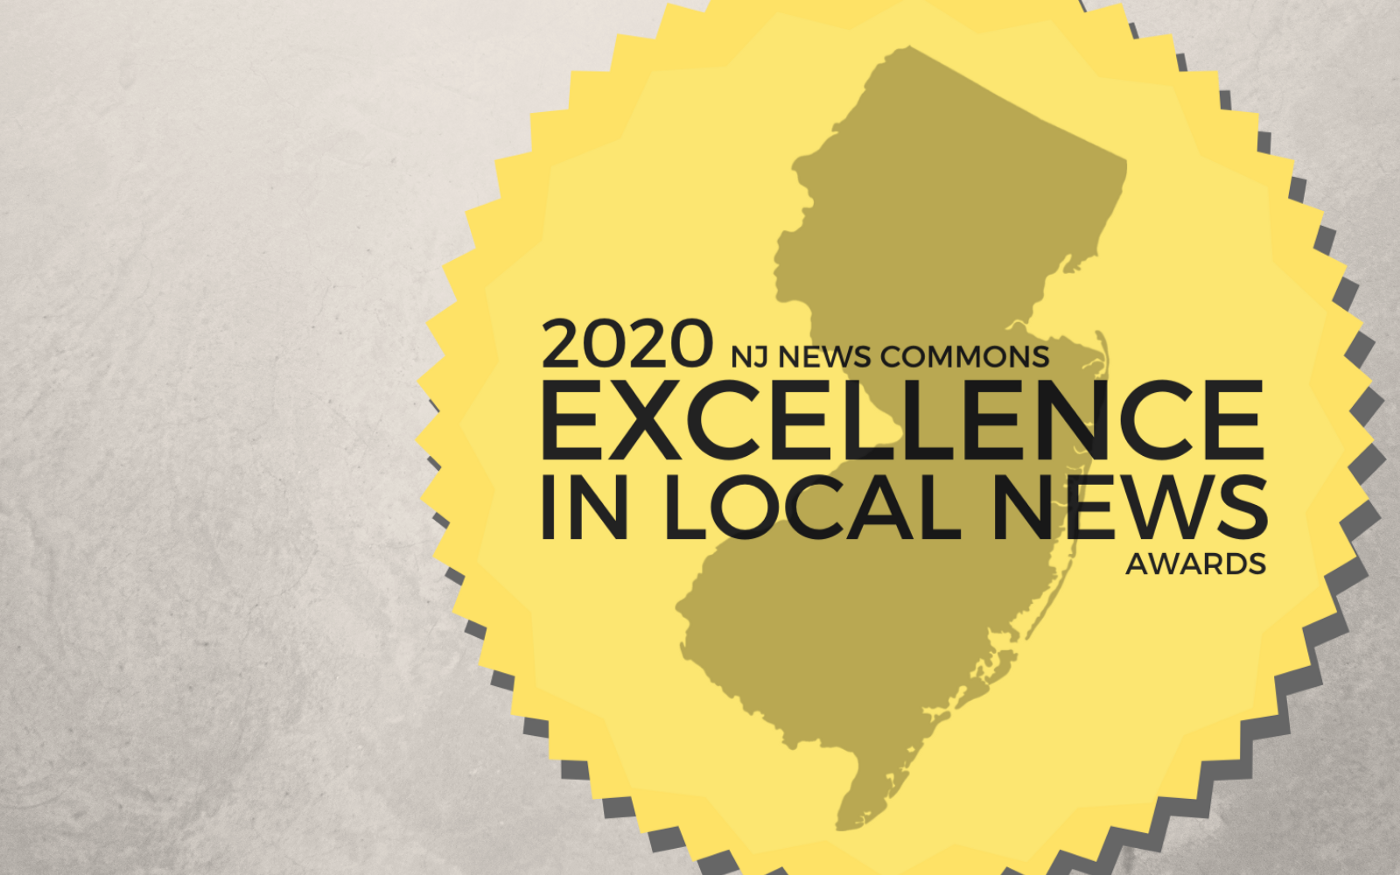 A featured imaged showing the 2020 Excellence in Local News Awards badge and logo.